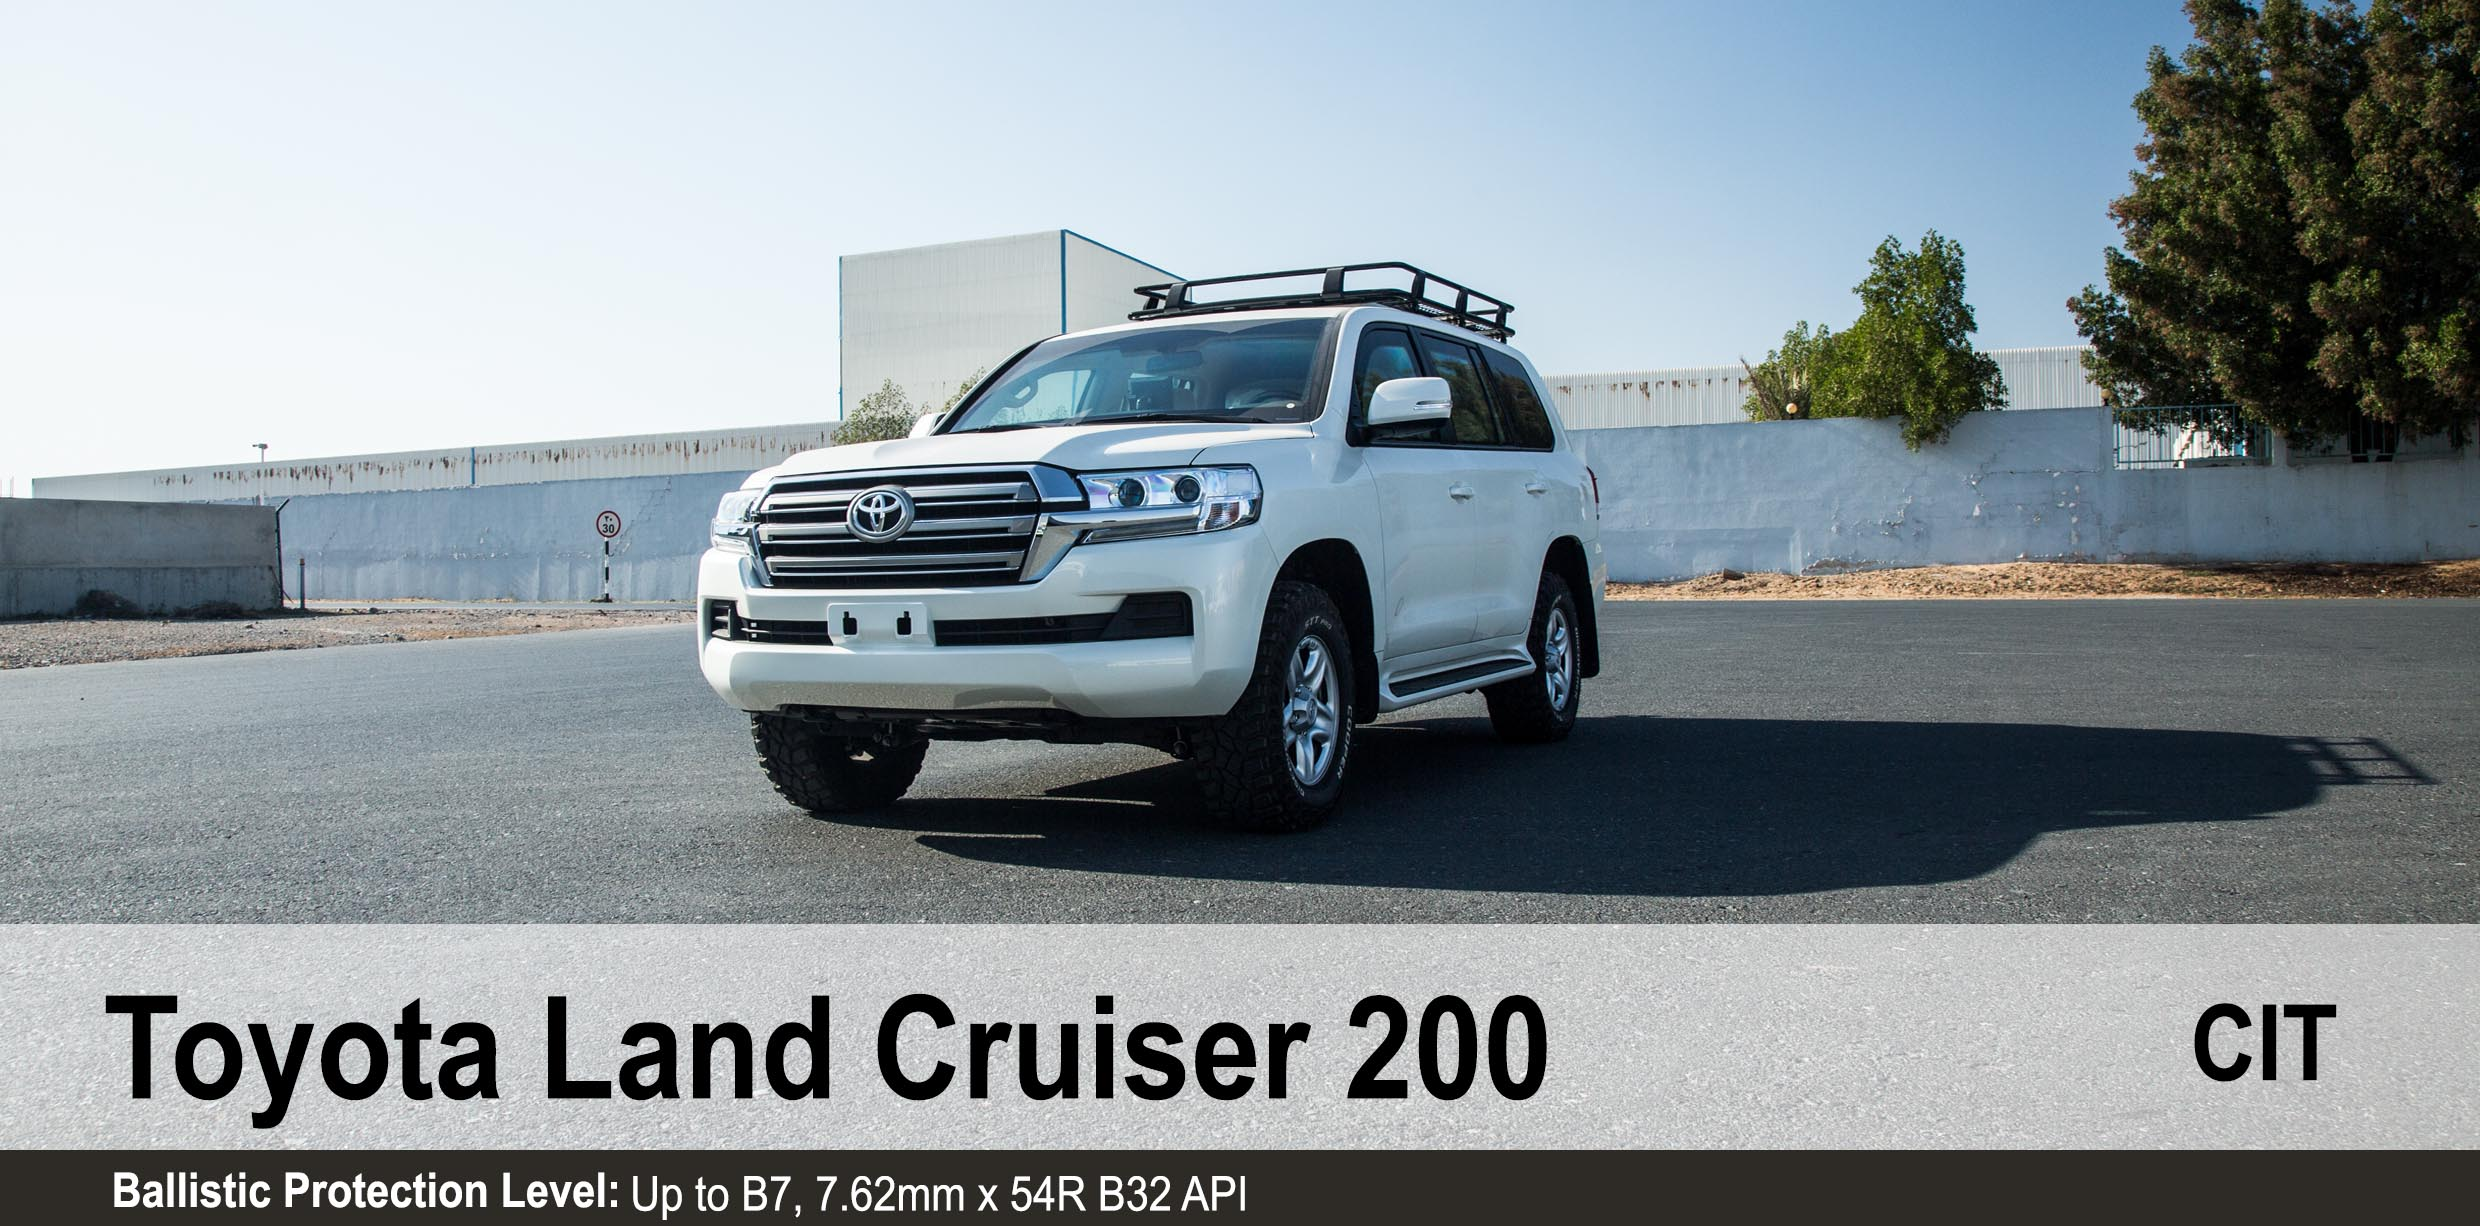 Armoured Toyota Land Cruiser 200 CIT